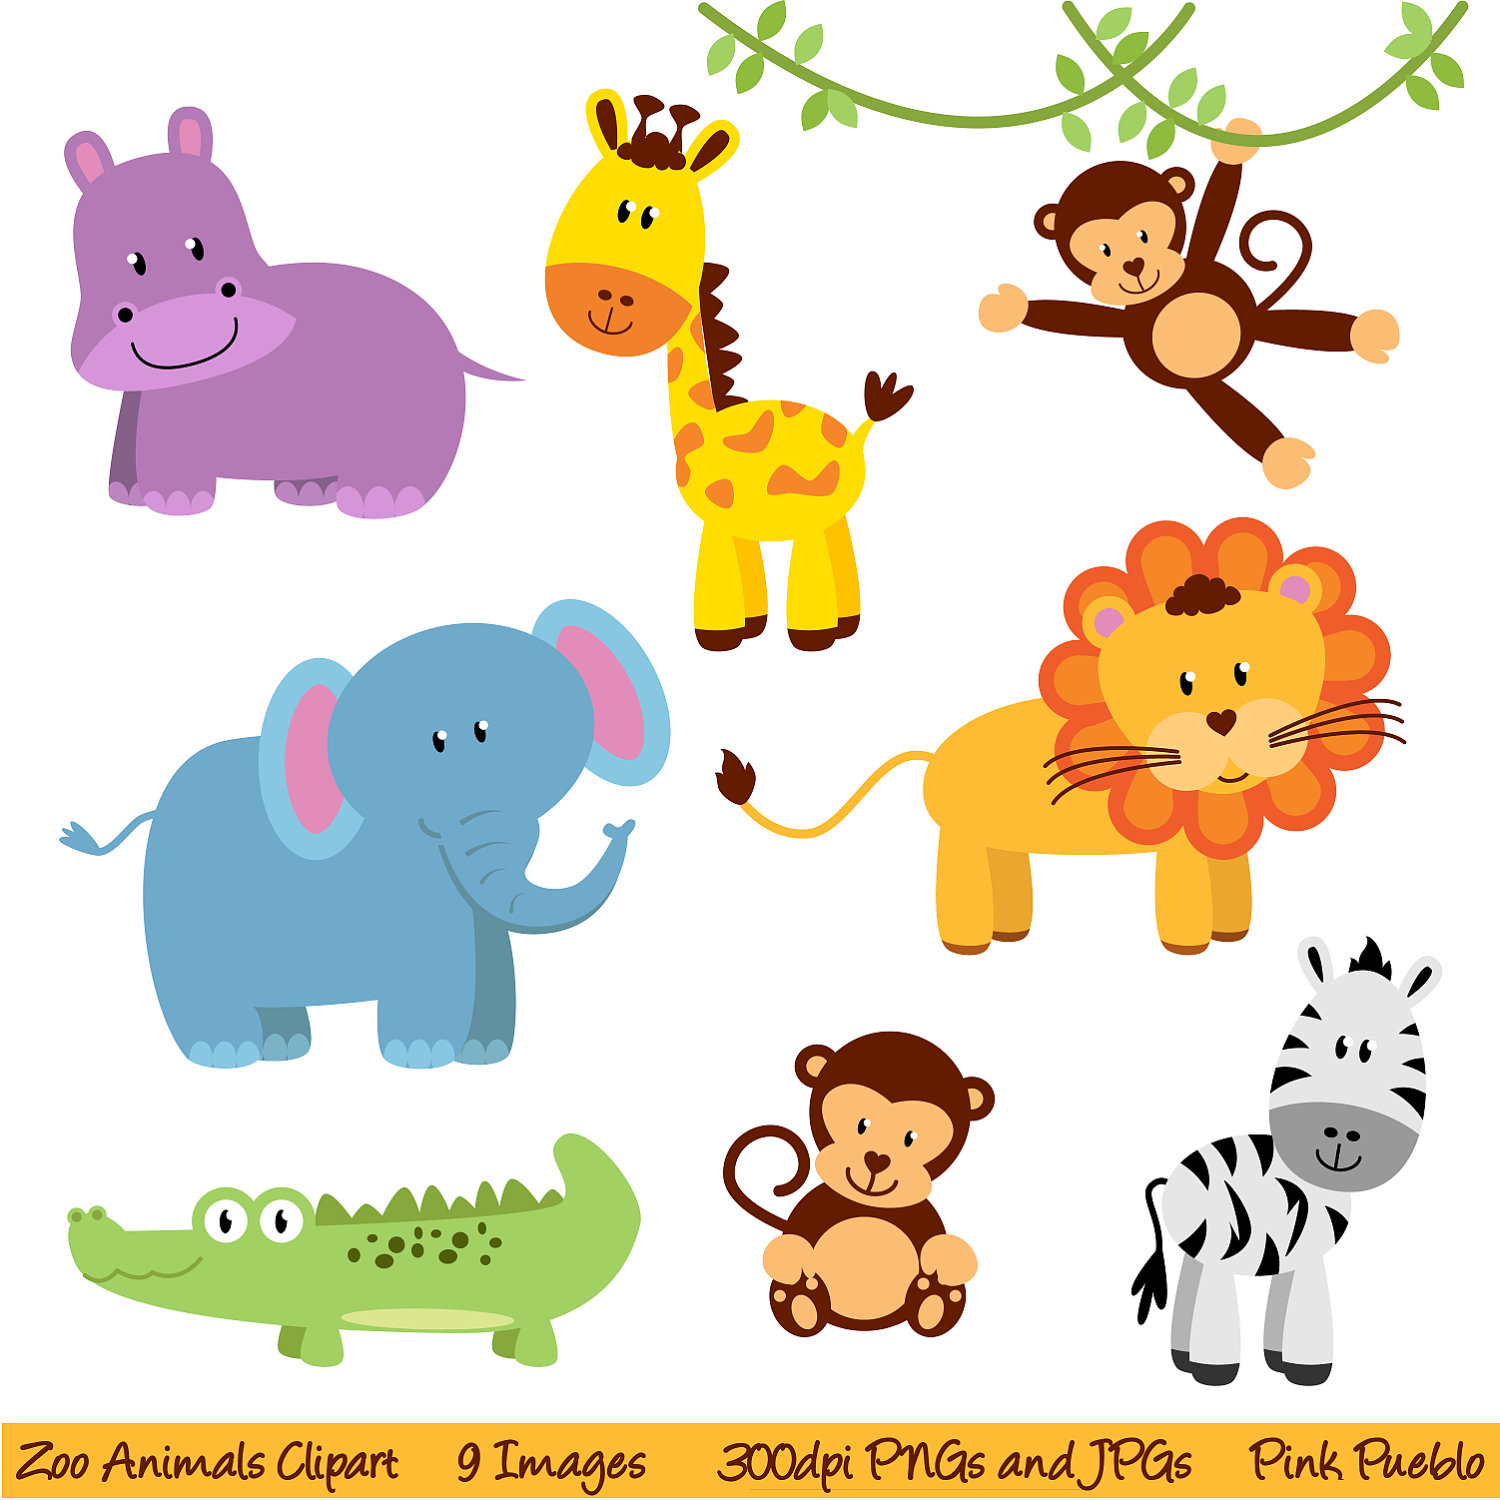 baby zoo animal clipart at getdrawings com free for personal use rh getdrawings com zoo animal clip art printables free zoo animal clip art printables free